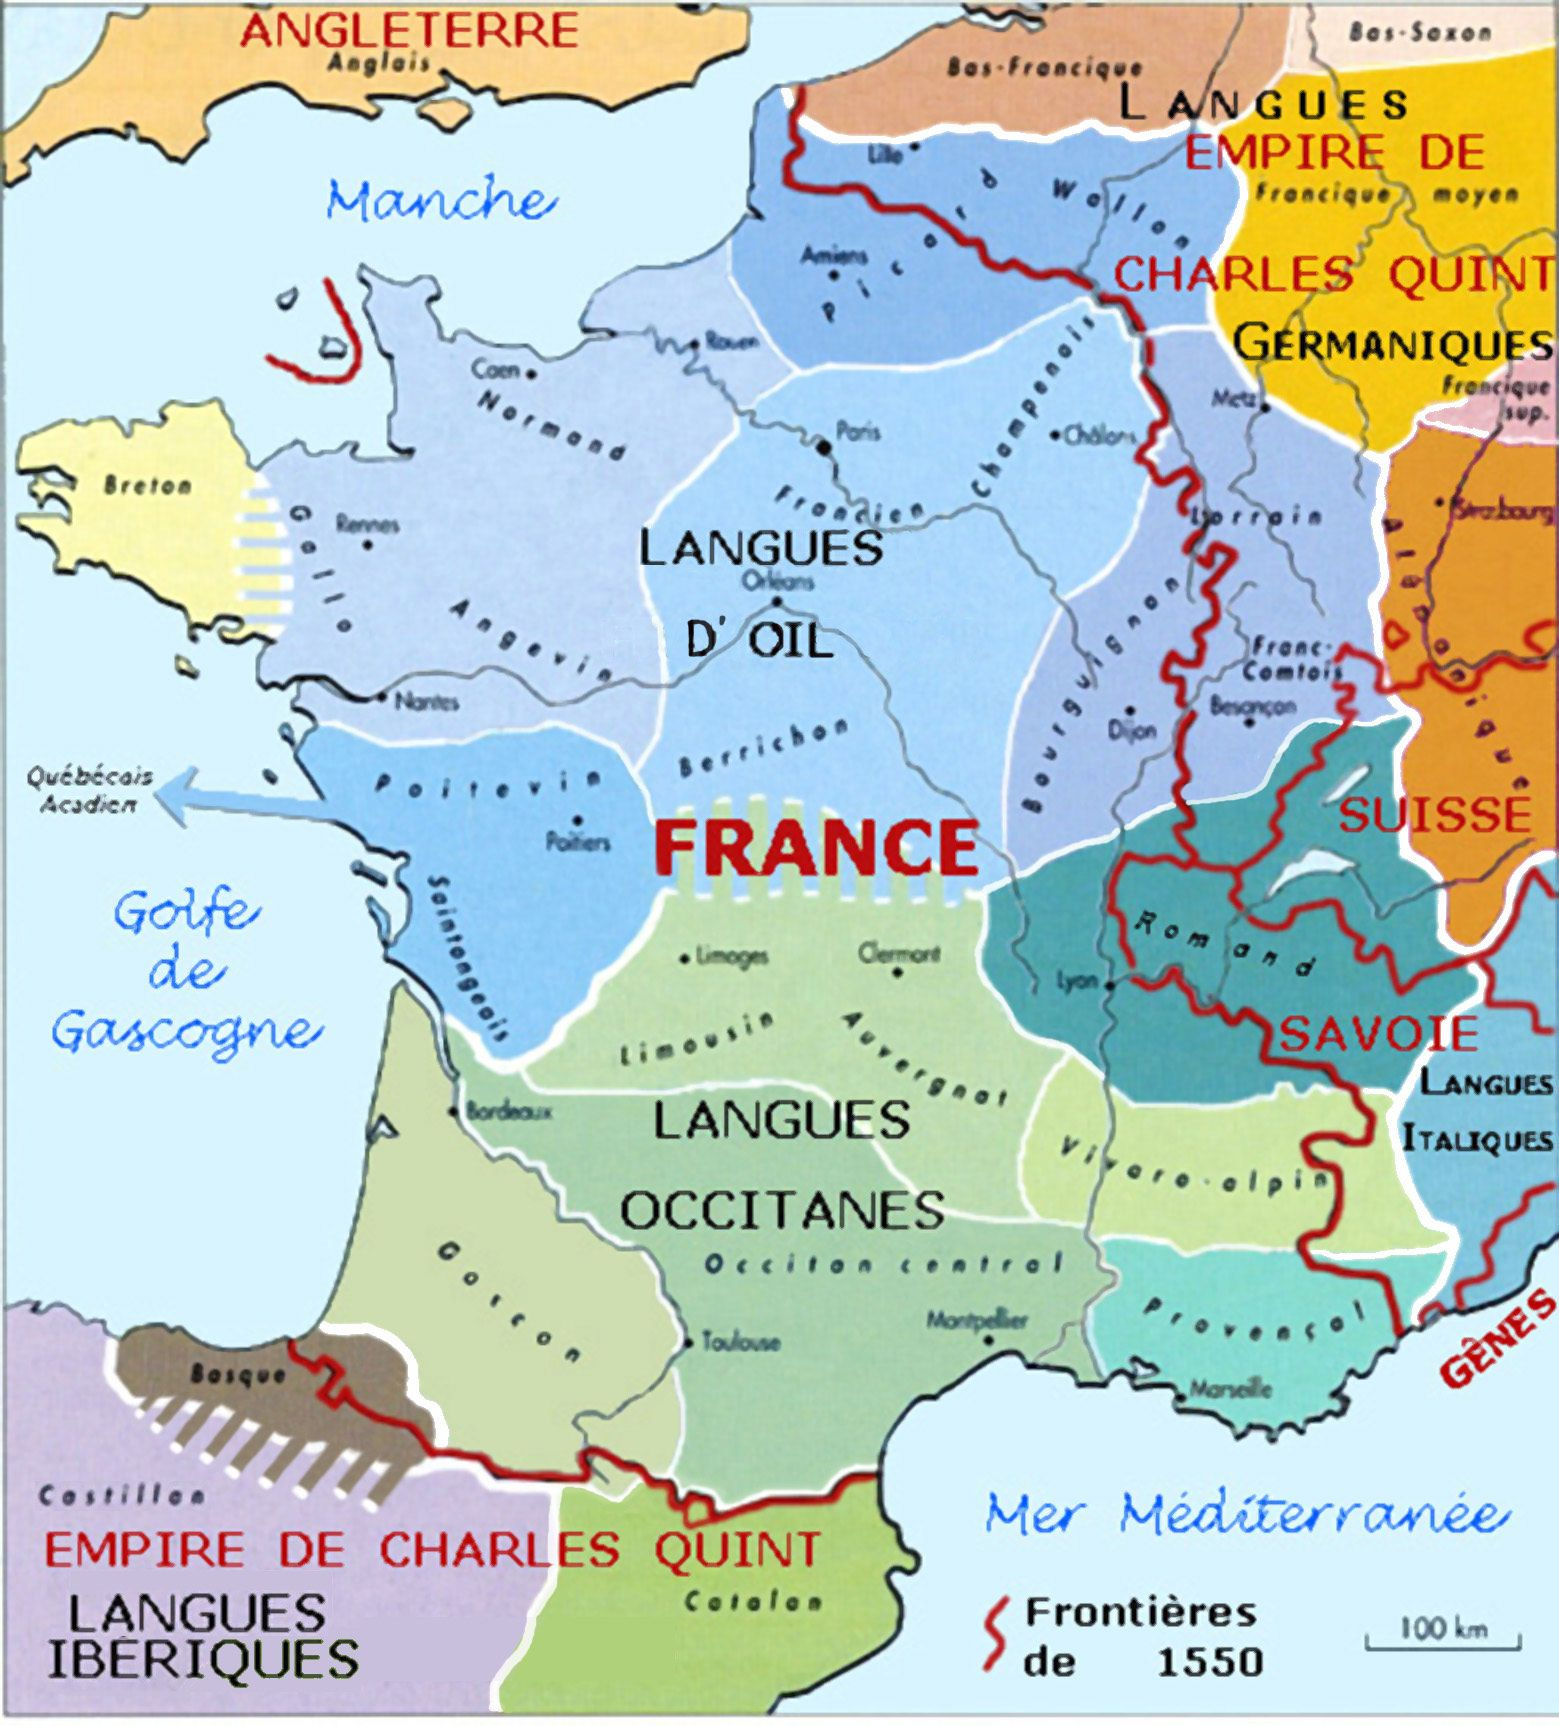 Map Of Europe France.France Languages Borders 1550 16th Century Europe France